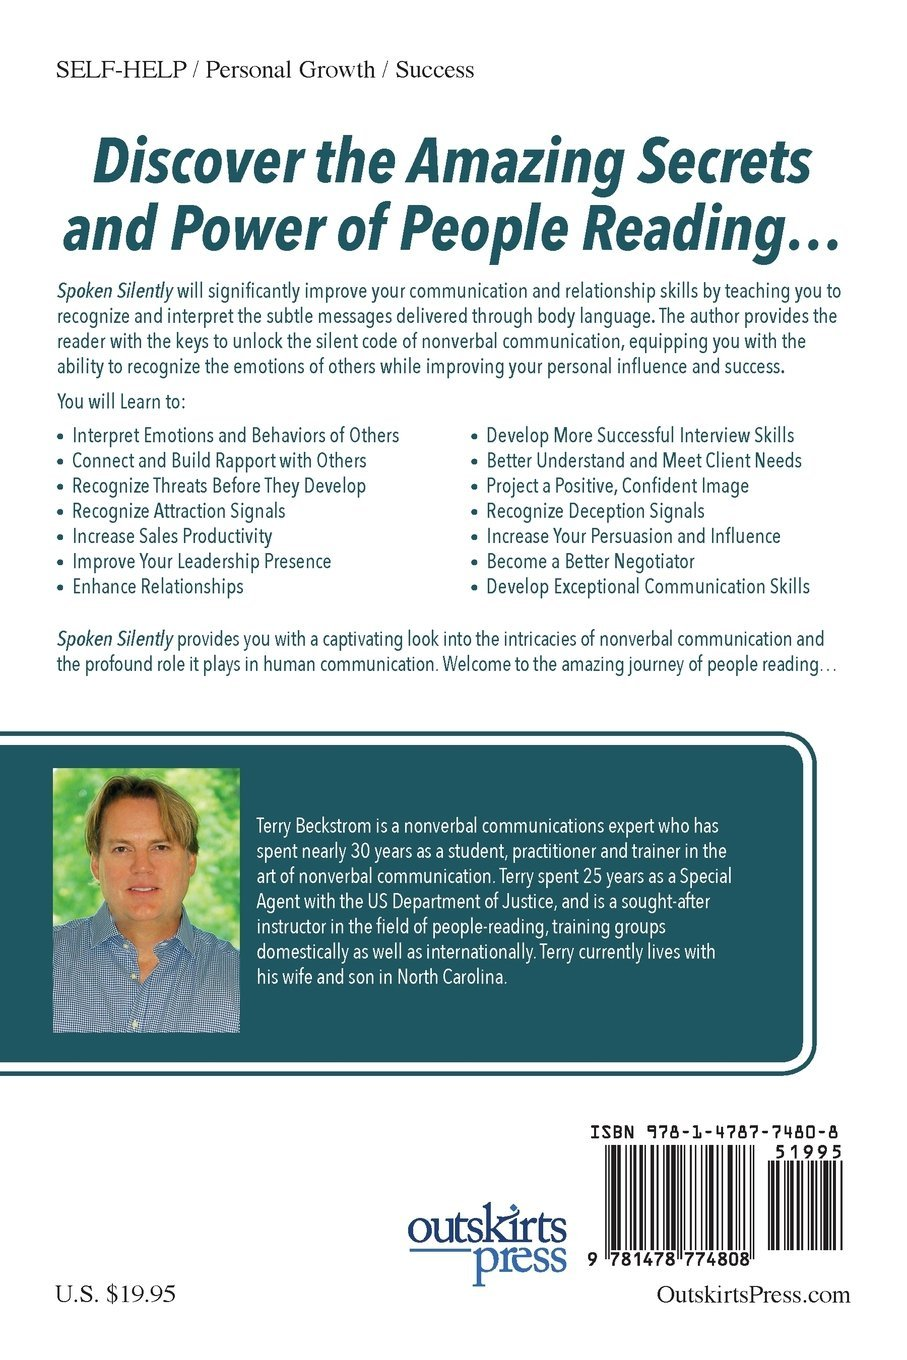 spoken silently the art and practice of reading people a spoken silently the art and practice of reading people a comprehensive guide to nonverbal communication and human behavioral interaction